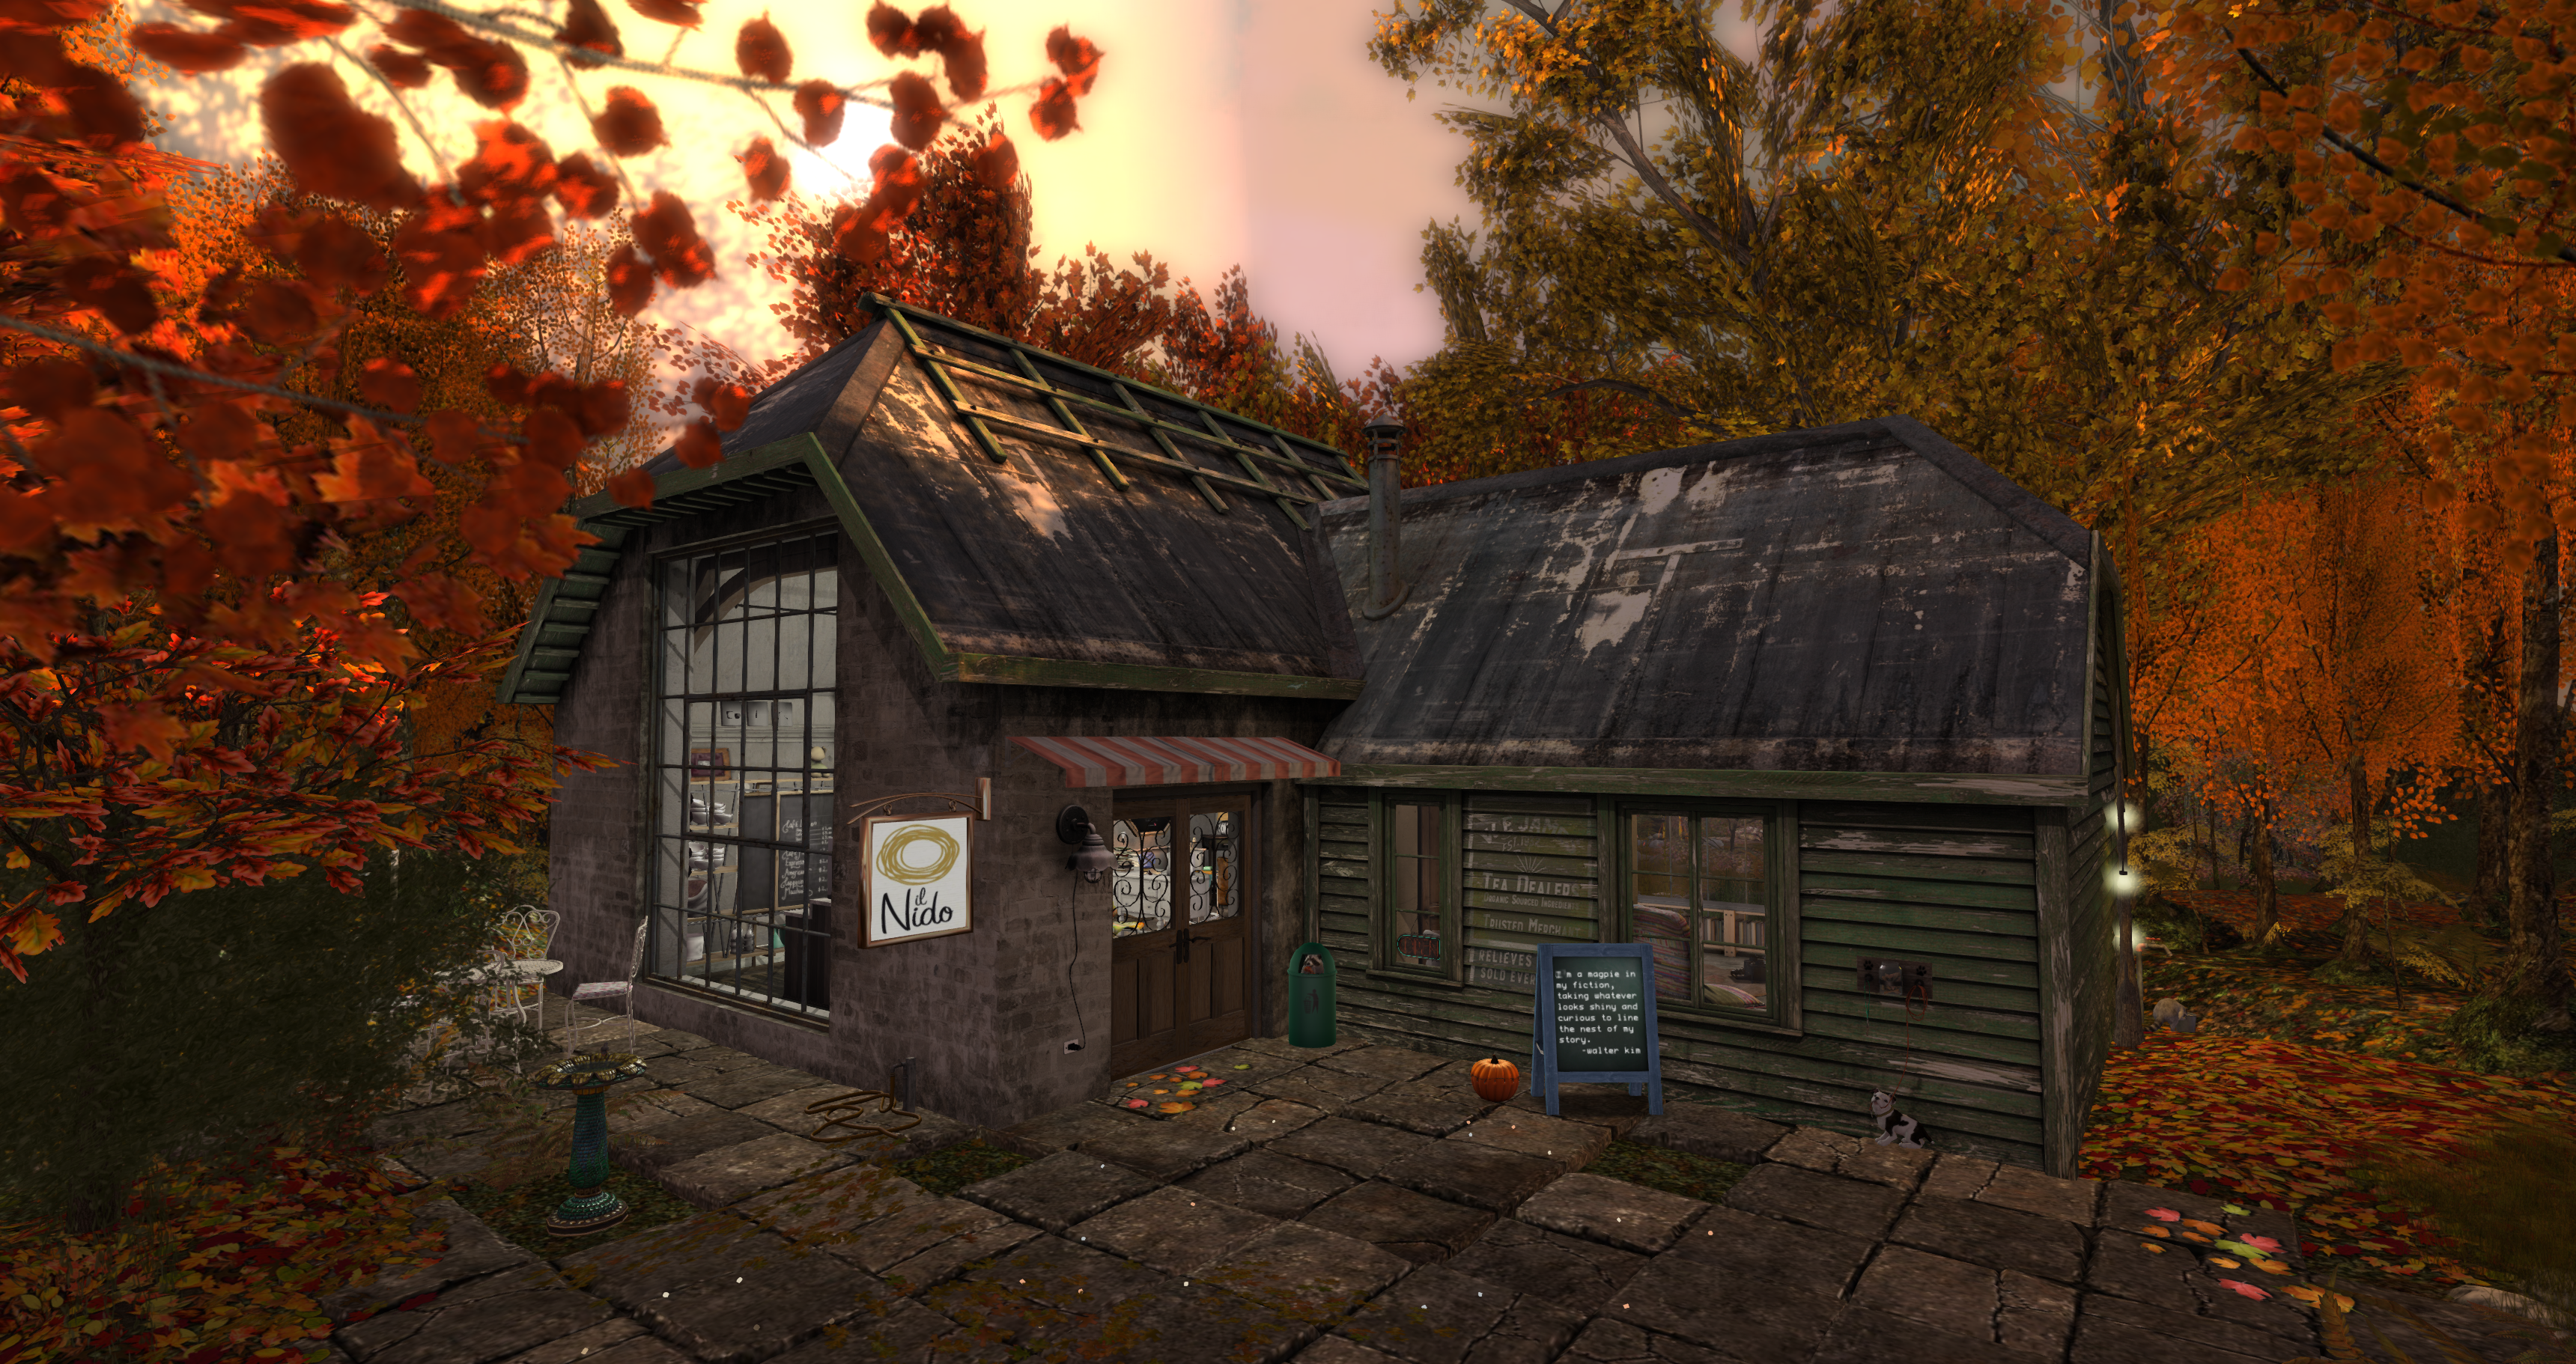 The Cafe Scene of Second Life